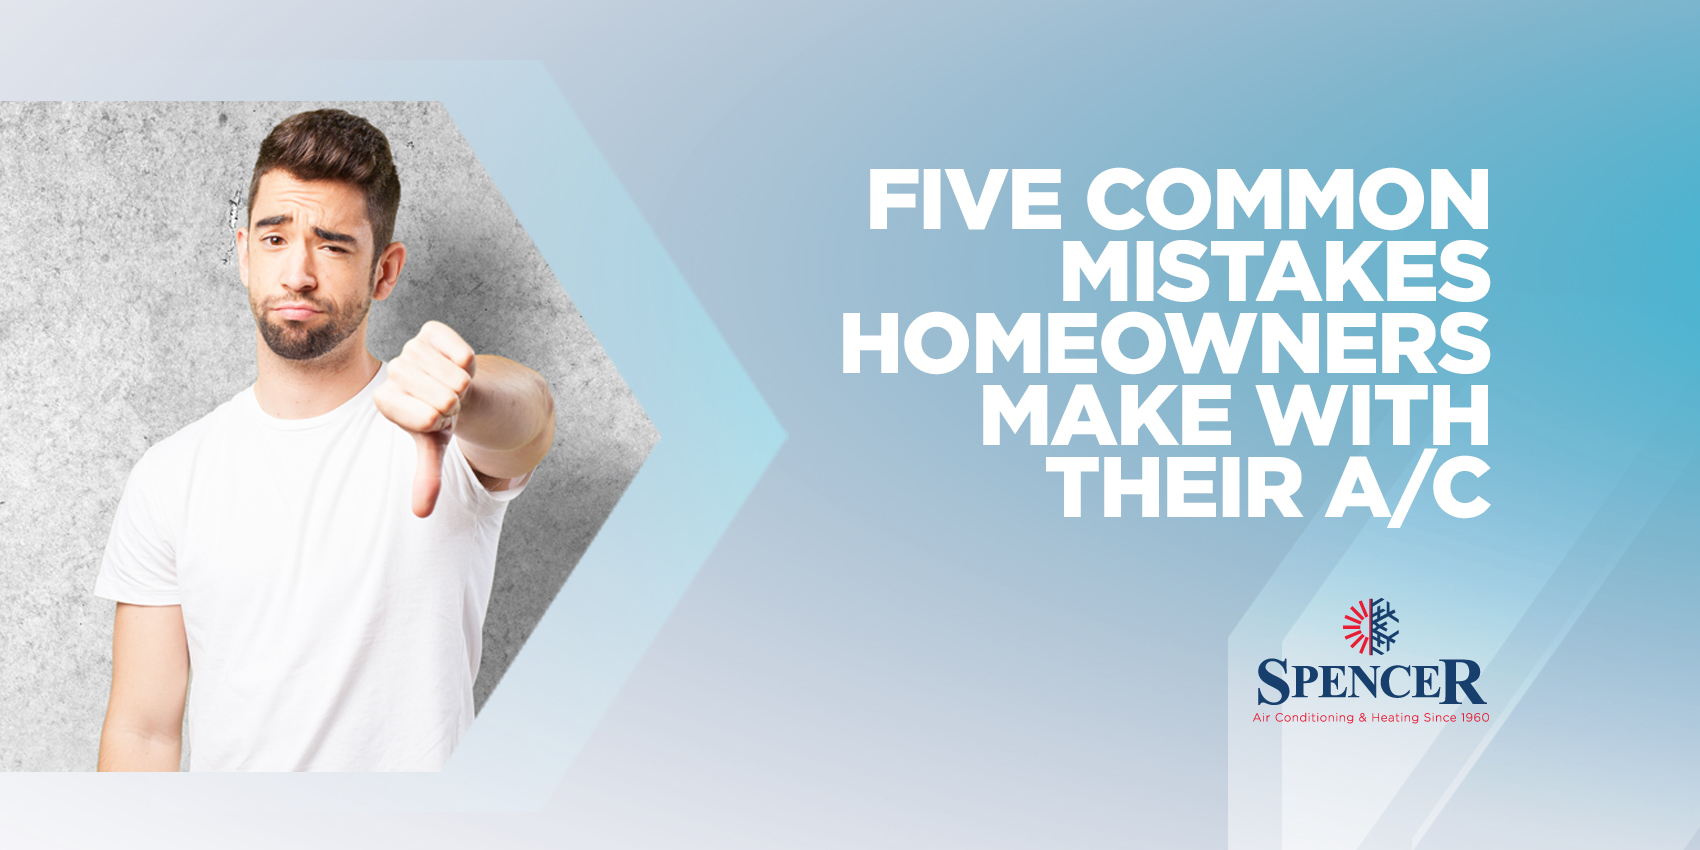 Five Common Mistakes Homeowners Make with their A/C